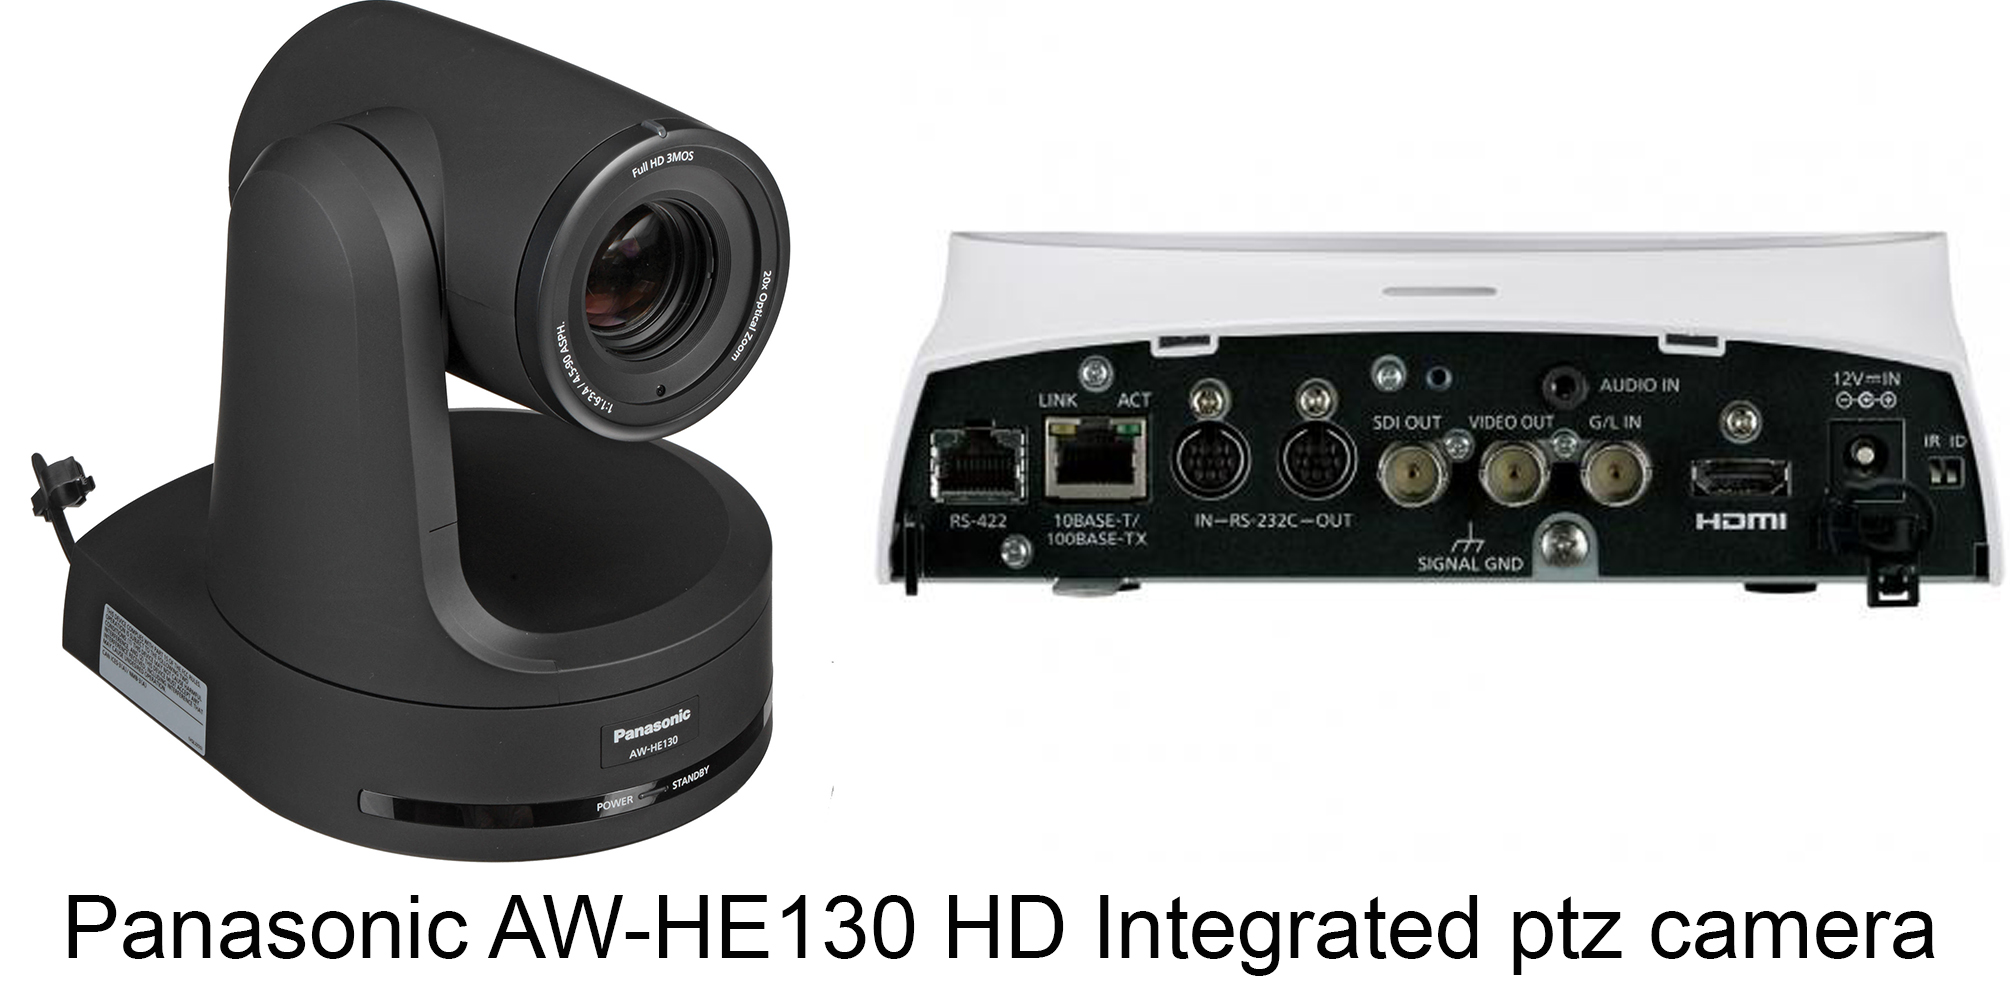 """Panasonic AW-HE130K Overview   The  Panasonic AW-HE130 HD Integrated PTZ Camera , in white, is capable of transmitting up to four channels over IP and at the same time a single channel over SDI or HDMI. IP channel 1 supports up to 1080p60 H.264 transmission, IP channel 2 up to 1080p30, and IP channels 3 and 4 up to 720p30. The SDI and HDMI outputs support up to 1080p60. In a multicast setup, the four IP channels can be sent simultaneously to a total of up to 14 devices (including one Android device).  The AW-HE130 features a high-sensitivity, low-noise 1/2.86"""" 3MOS sensor, an advanced digital signal processor (that's used in Panasonic broadcast camcorders such as the AJ-PX270), and a motorized 20x zoom lens. It's designed to capture high-image quality even in low-light conditions in sports, news, corporate, and other professional applications. The camera also offers Power-over-Ethernet+ (PoE+), which delivers more power than standard PoE and also allows for quicker and less expensive installation. Other features include 12-axis color correction, built-in neutral density filters, and optical image stabilization.    4-Channel IP Transmission The AW-HE130 is capable of transmitting 4 channels of video over IP plus over a 3G-SDI or HDMI output at the same time. IP channel 1 and the 3G-SDI/HDMI outputs deliver up to 1080p60 video, IP channel 2 up to 1080p30, and IP channels 3 and 4 up to 720p30.  1/2.86"""" 3MOS Sensor Equipped with three advanced 1/2.86"""" Full HD MOS sensors and DSP (Digital Signal Processor), the AW-HE130 achieves high sensitivity, a high S/N ratio, and high resolution through the use of advanced video processing.  Optical Image Stabilizer and Digital Extender Optical Image Stabilization System (OIS) automatically minimizes the effect of small vibrations from the surface where the camera is mounted, whether this is caused by the opening and closing of doors, nearby speakers, or other disturbances. A high performance 20x zoom lens with 1.4x digital extender"""